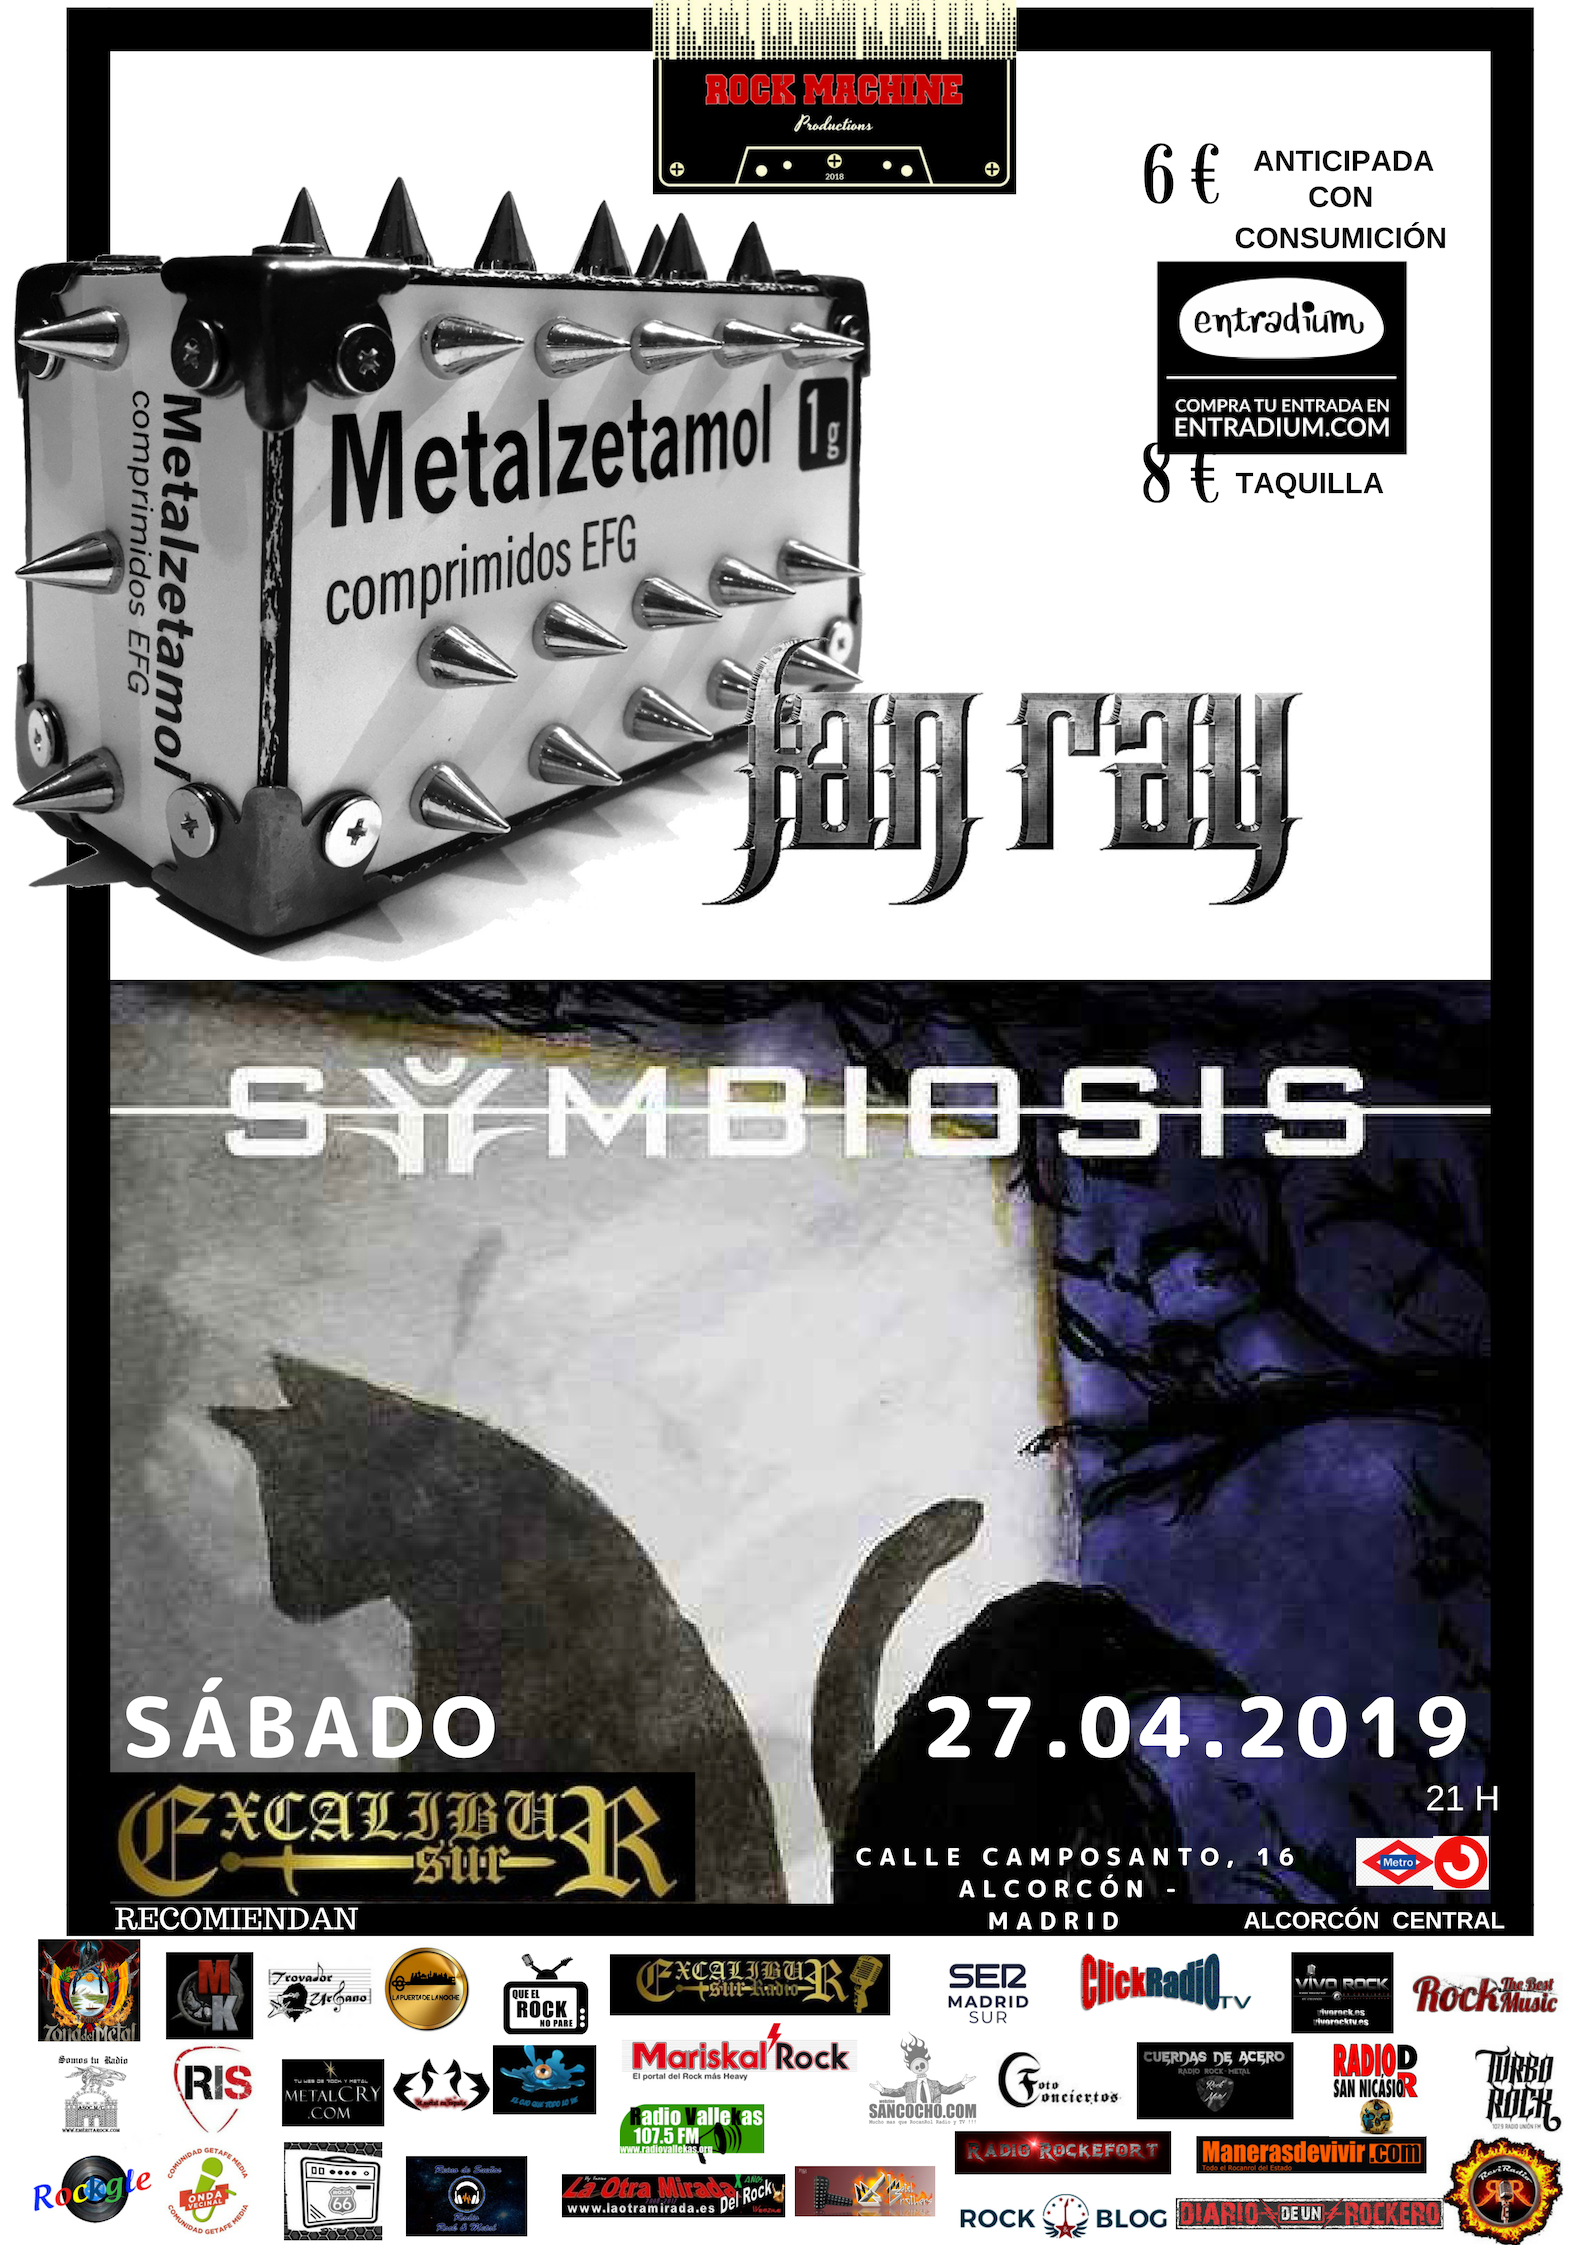 Fan Ray-Symbiosis - 27 de abril